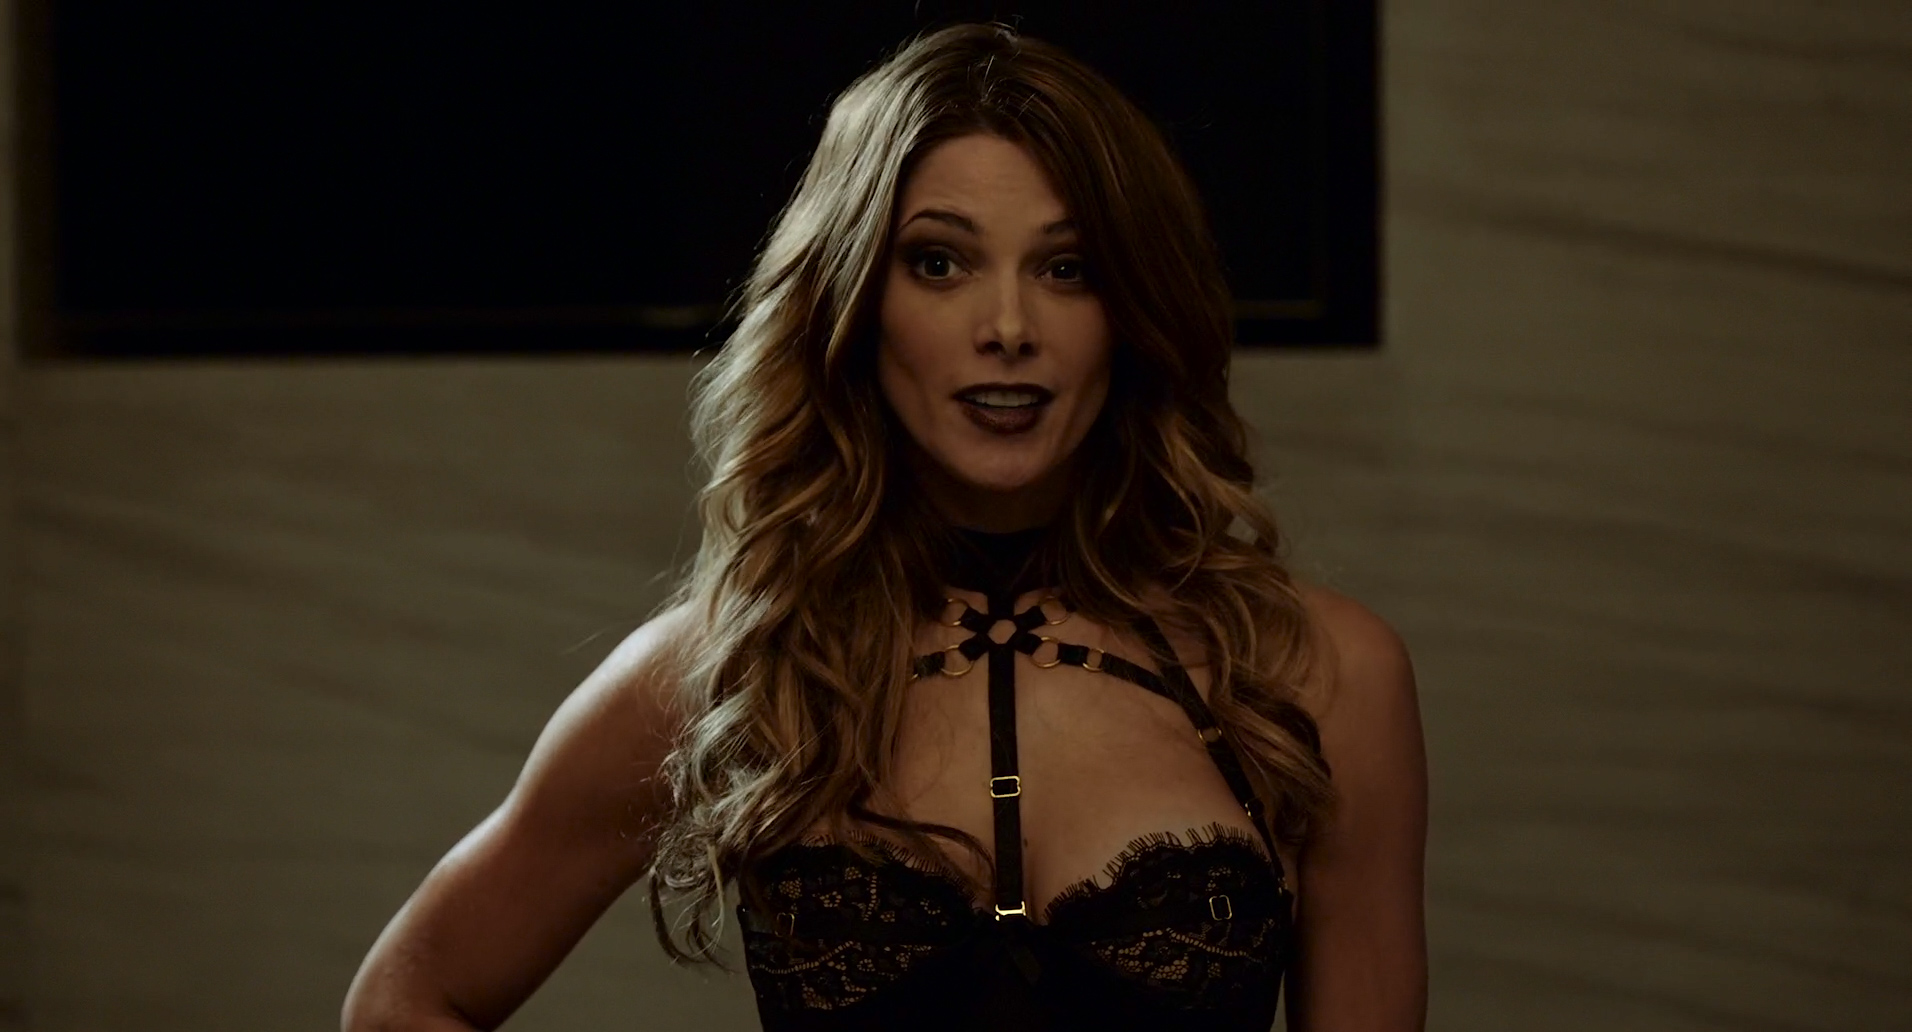 Ashley Greene hot dominatrix Alexis Knapp sexy other's hot and nude - Urge (2016) HD 1080p (2)